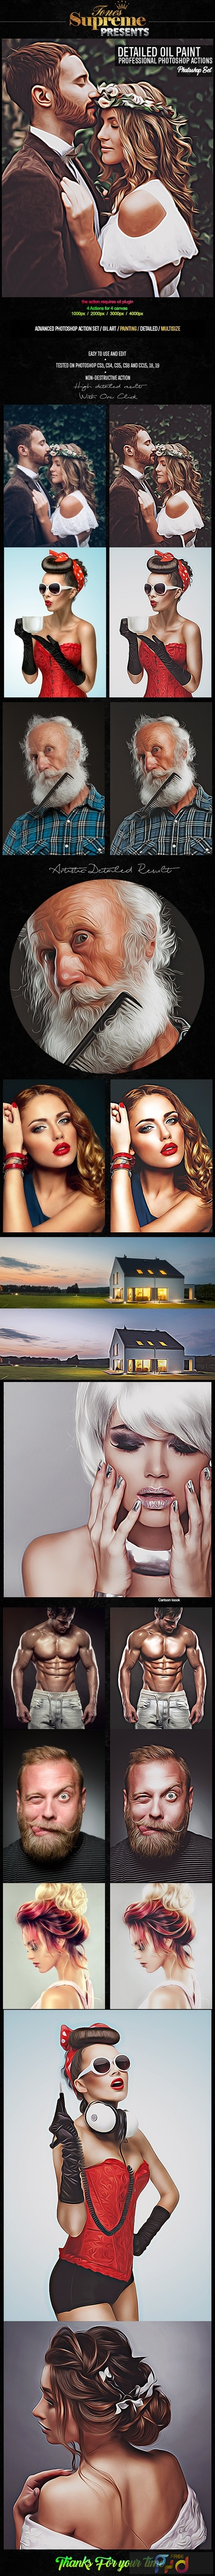 Detailed Oil Painting Photoshop Actions 24722683 1